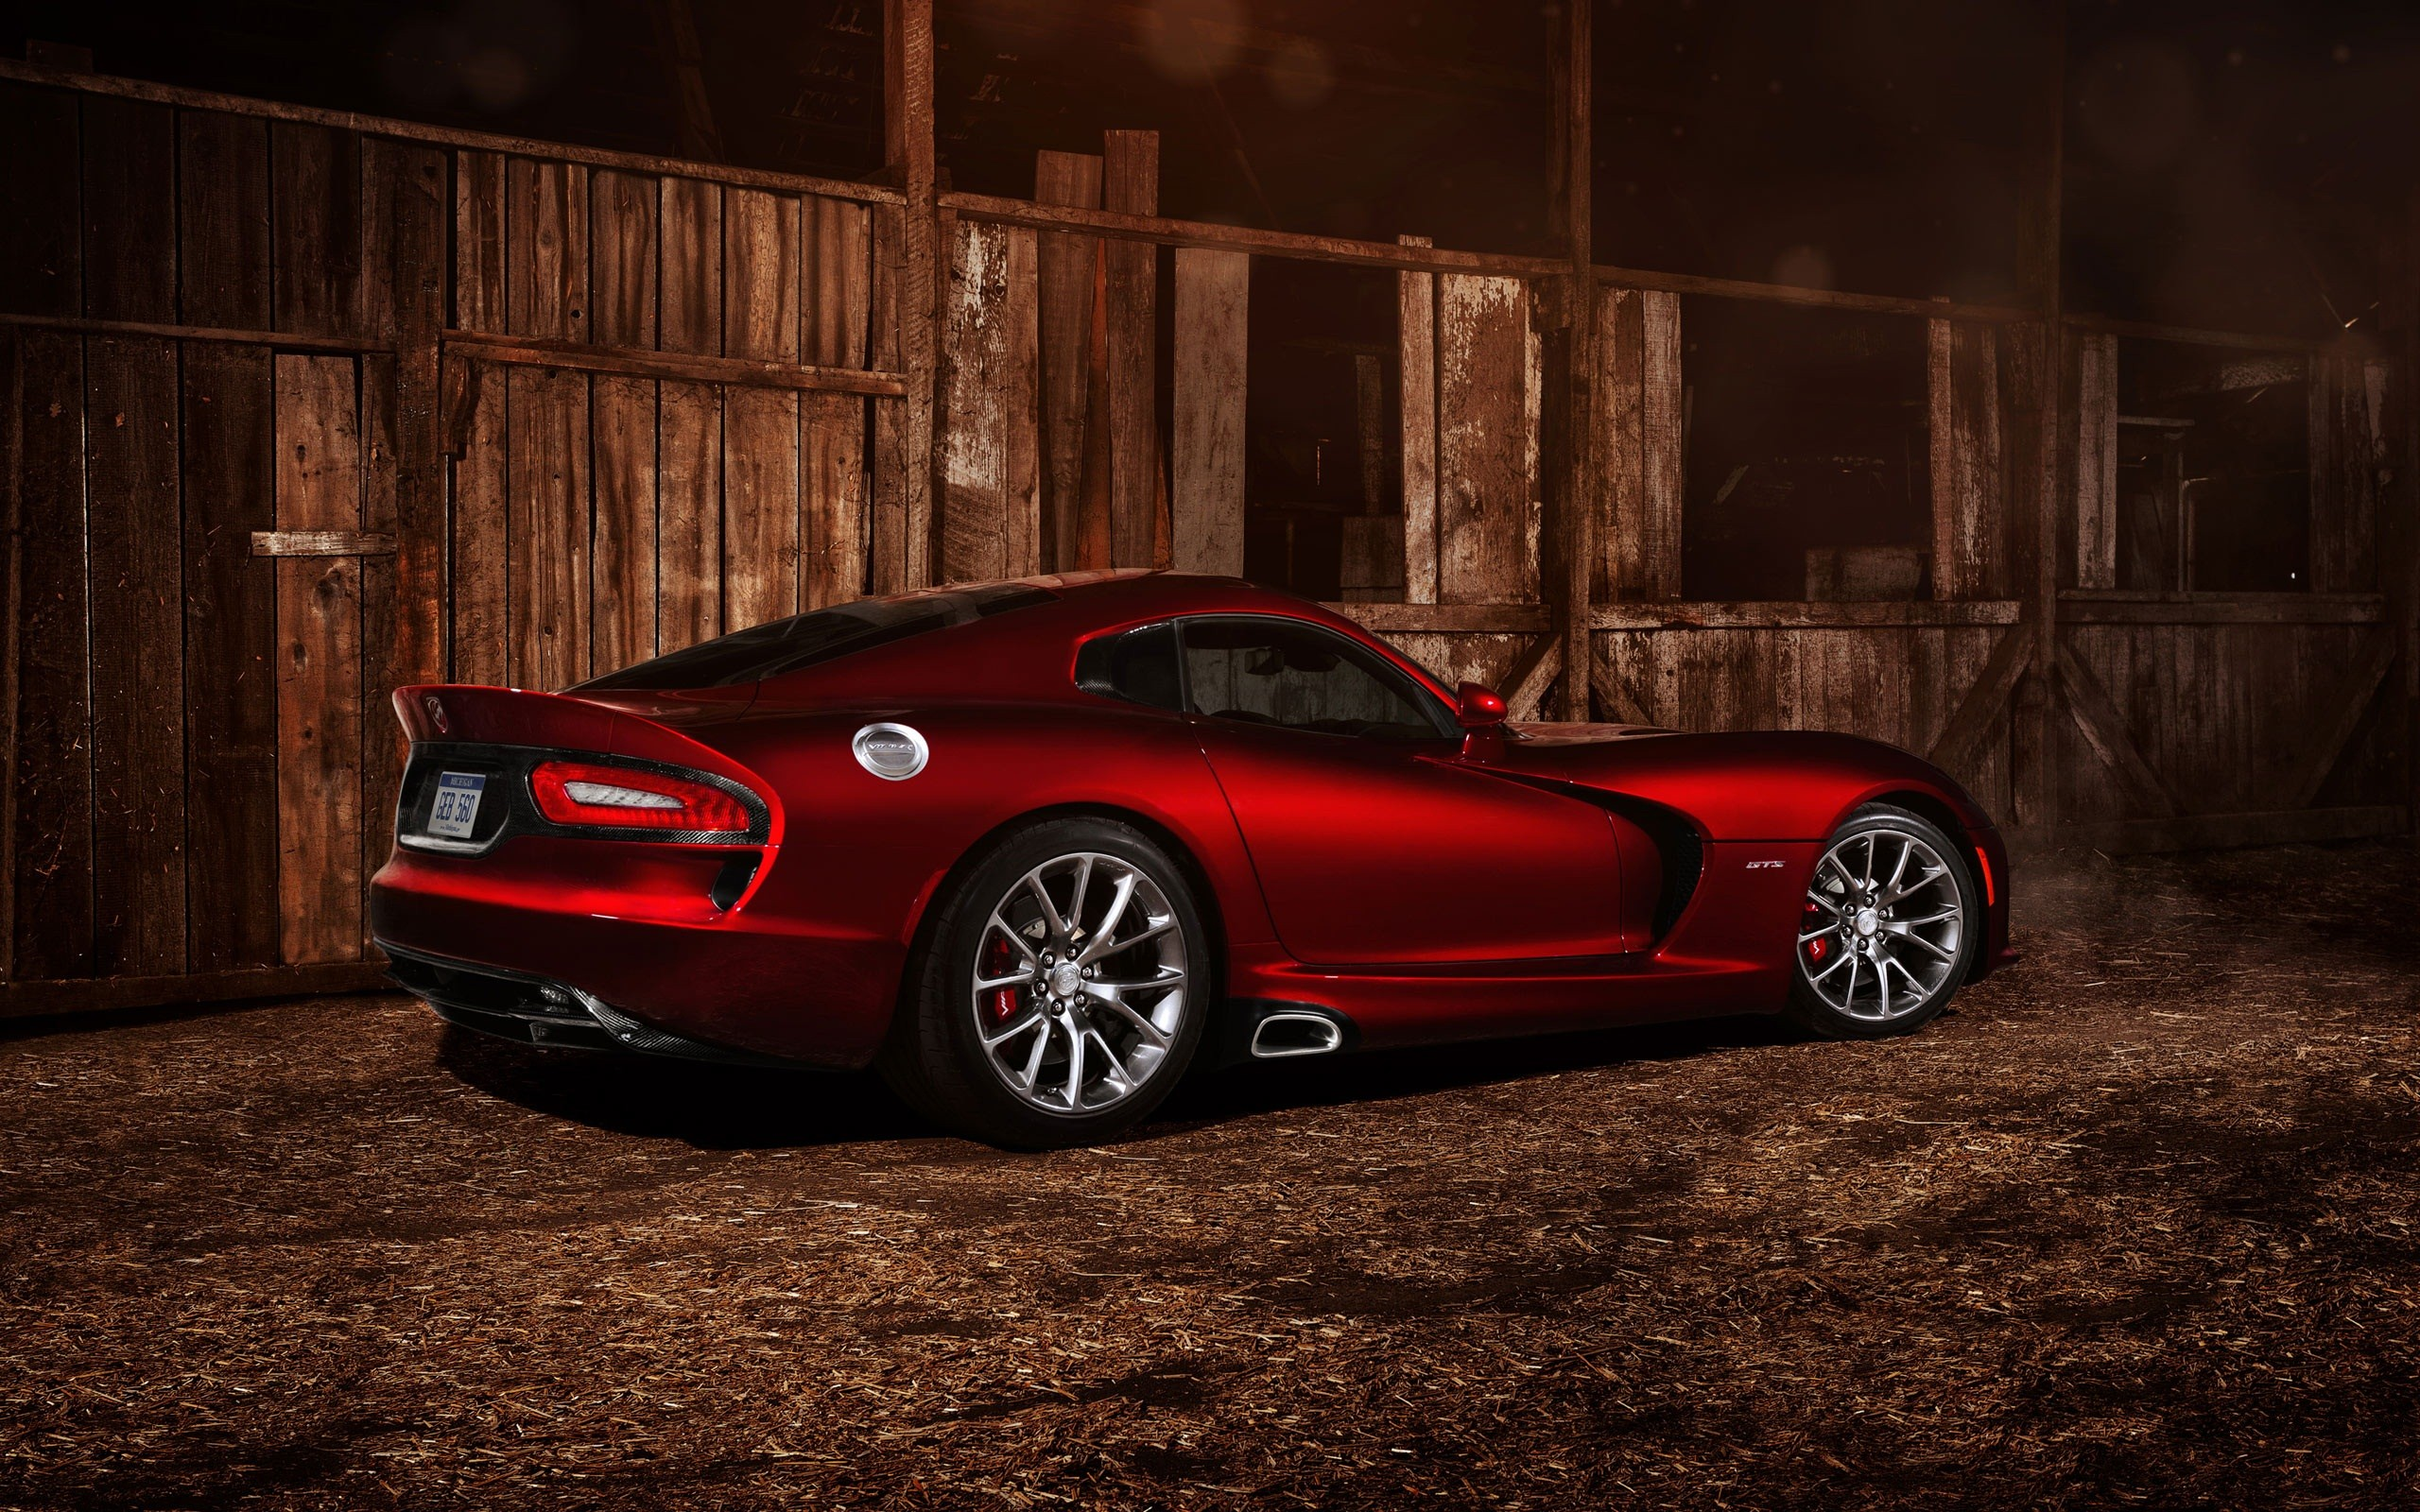 Stunning Dodge Viper Wallpaper